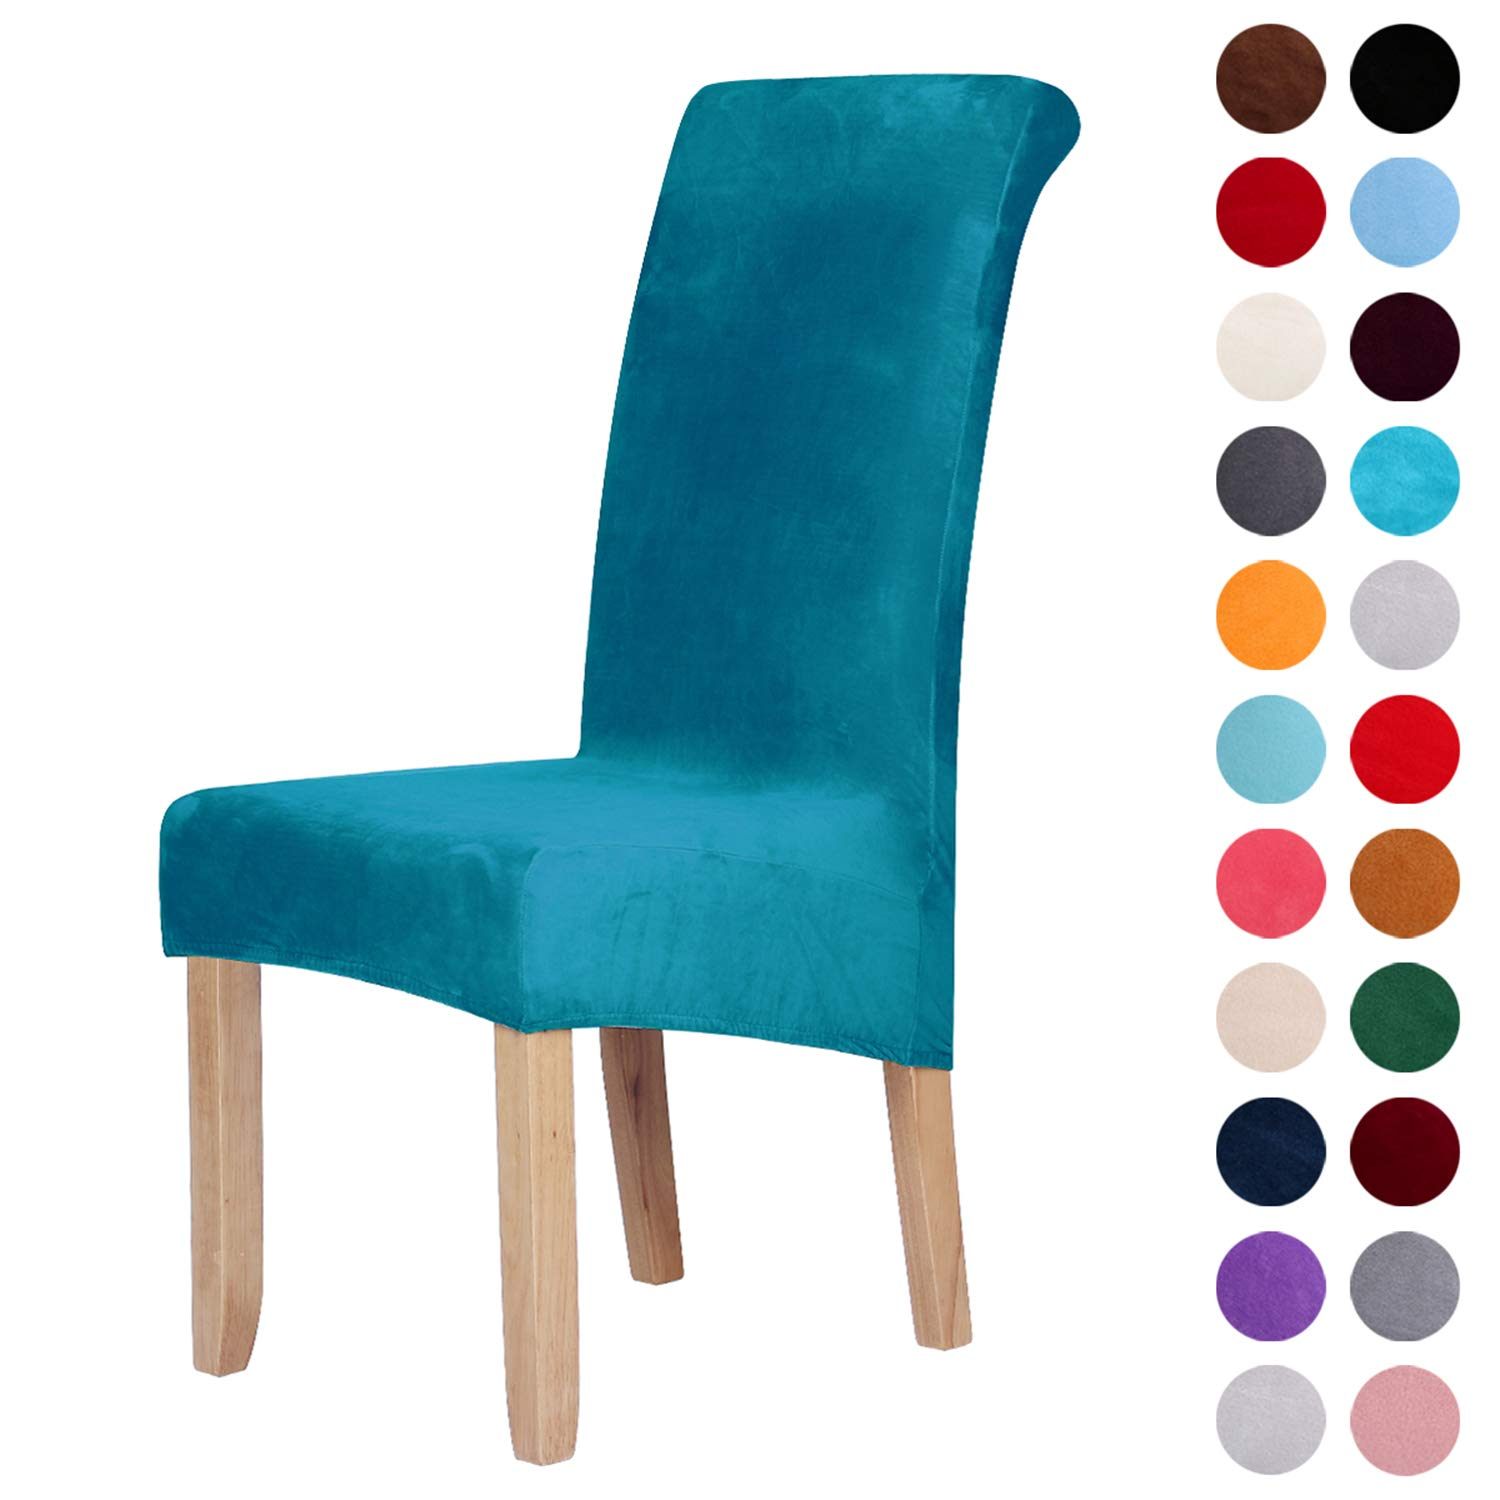 Chair Cover Spandex Strech Dining Room Chair Protector Slipcovers Decor Dining